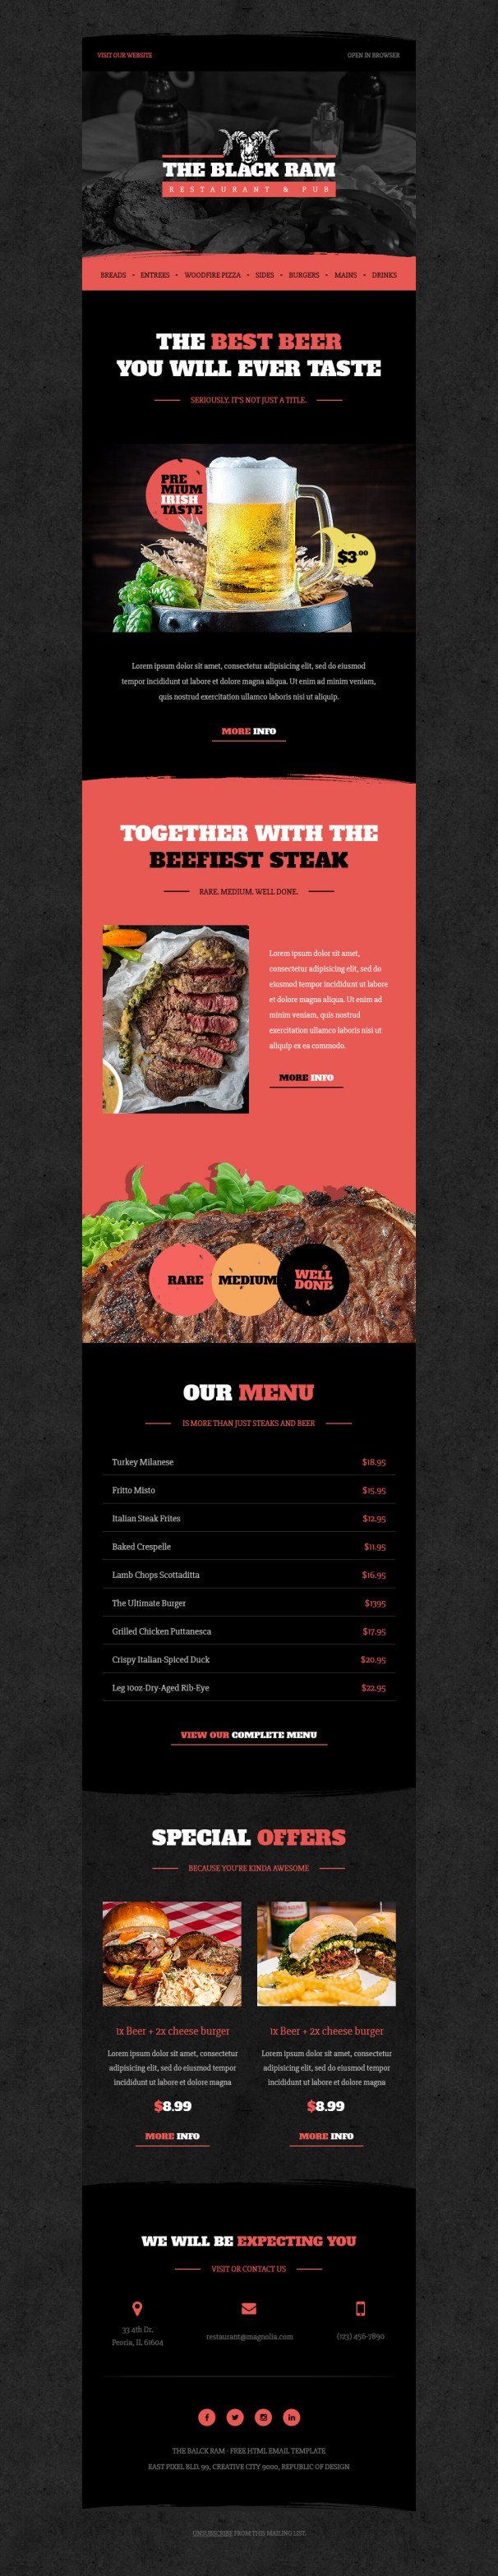 MB_Freemium-Templates_Food-and-Restaurants_3